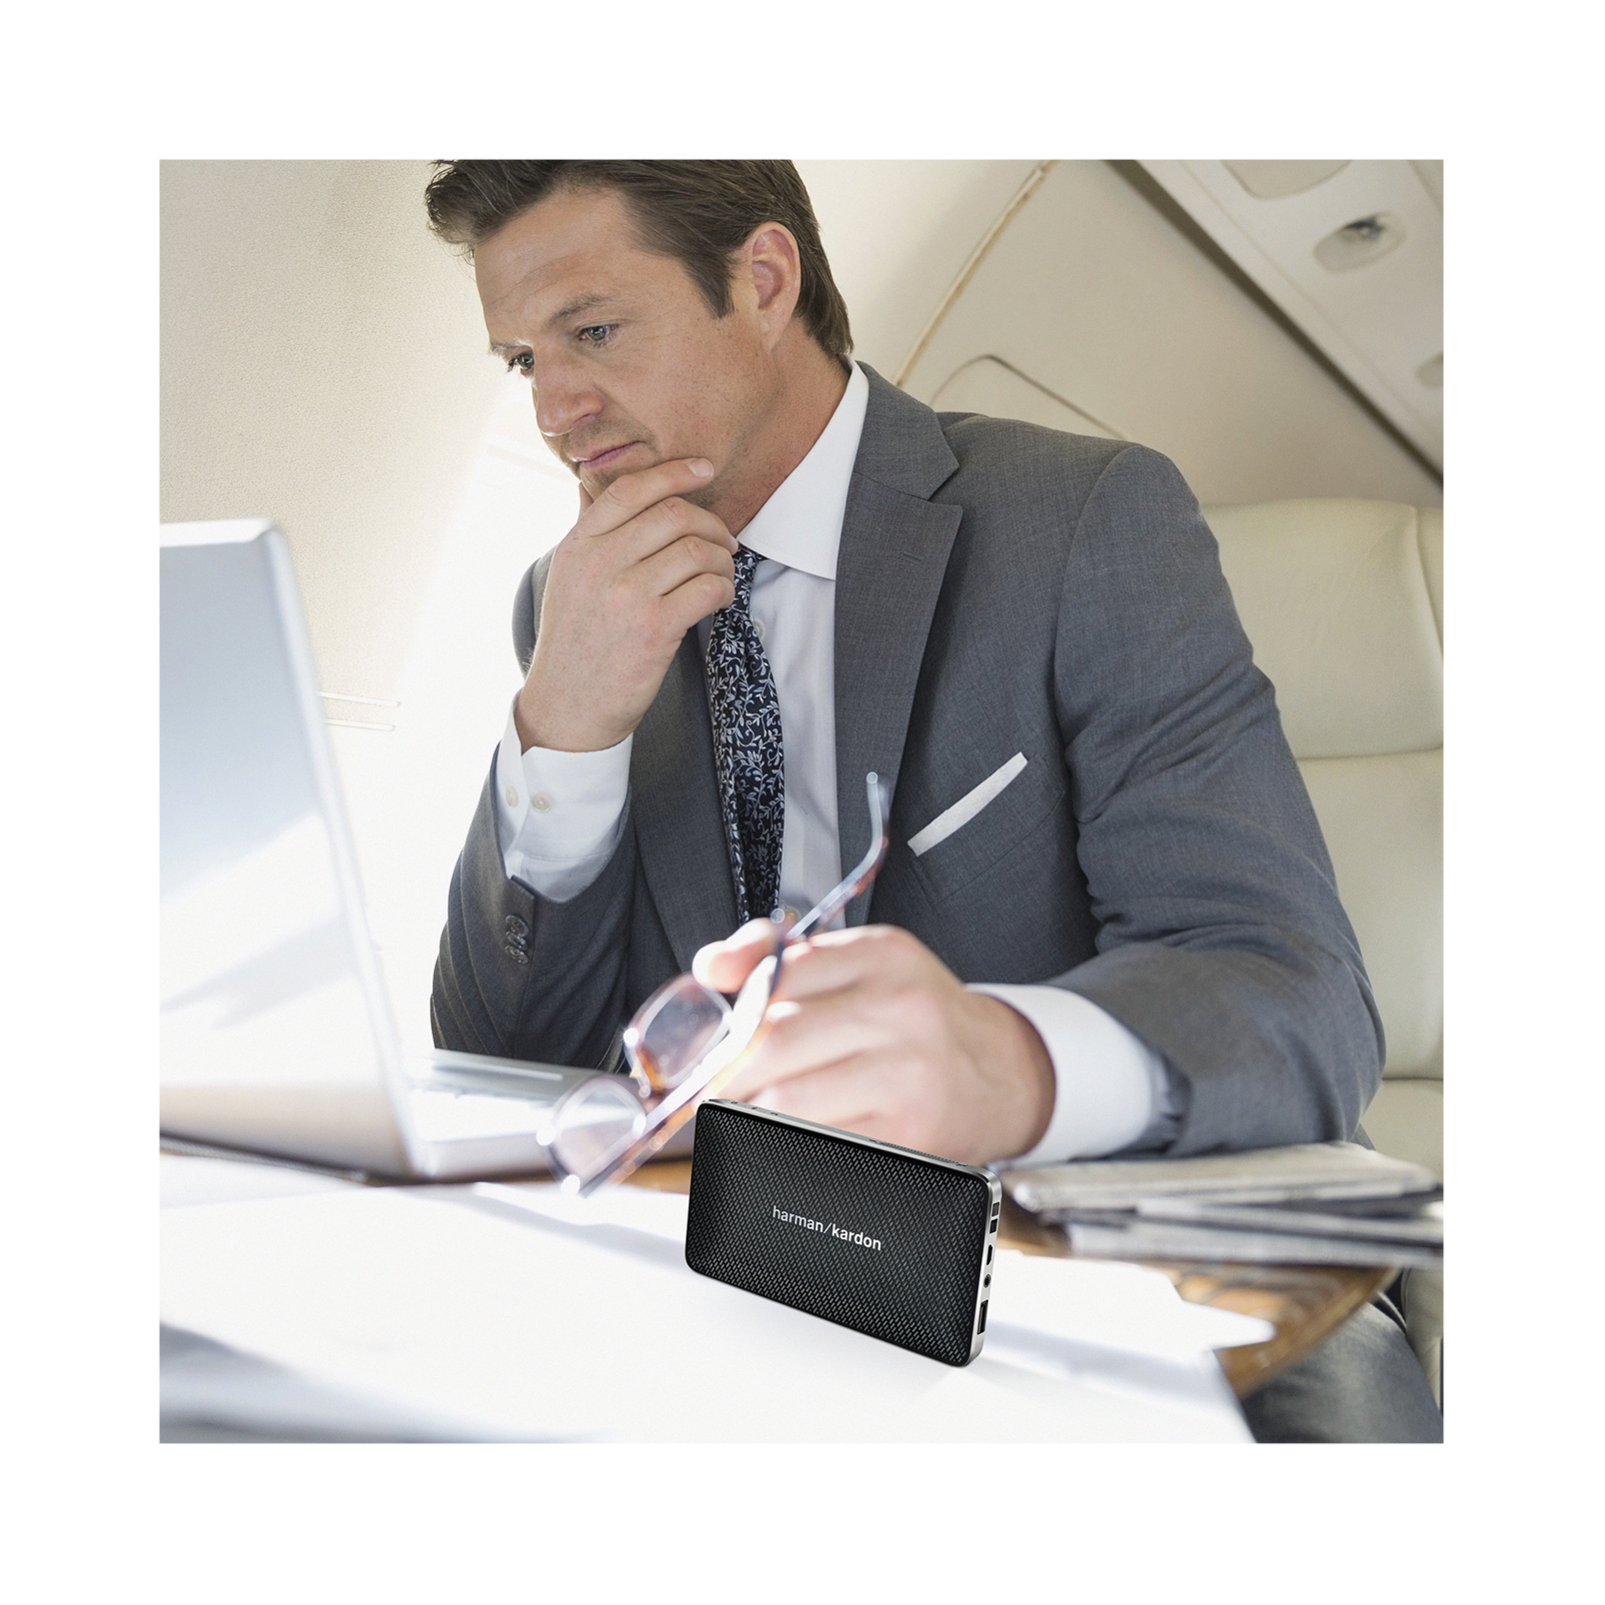 Esquire Mini - Brown - Wireless, portable speaker and conferencing system - Detailshot 8